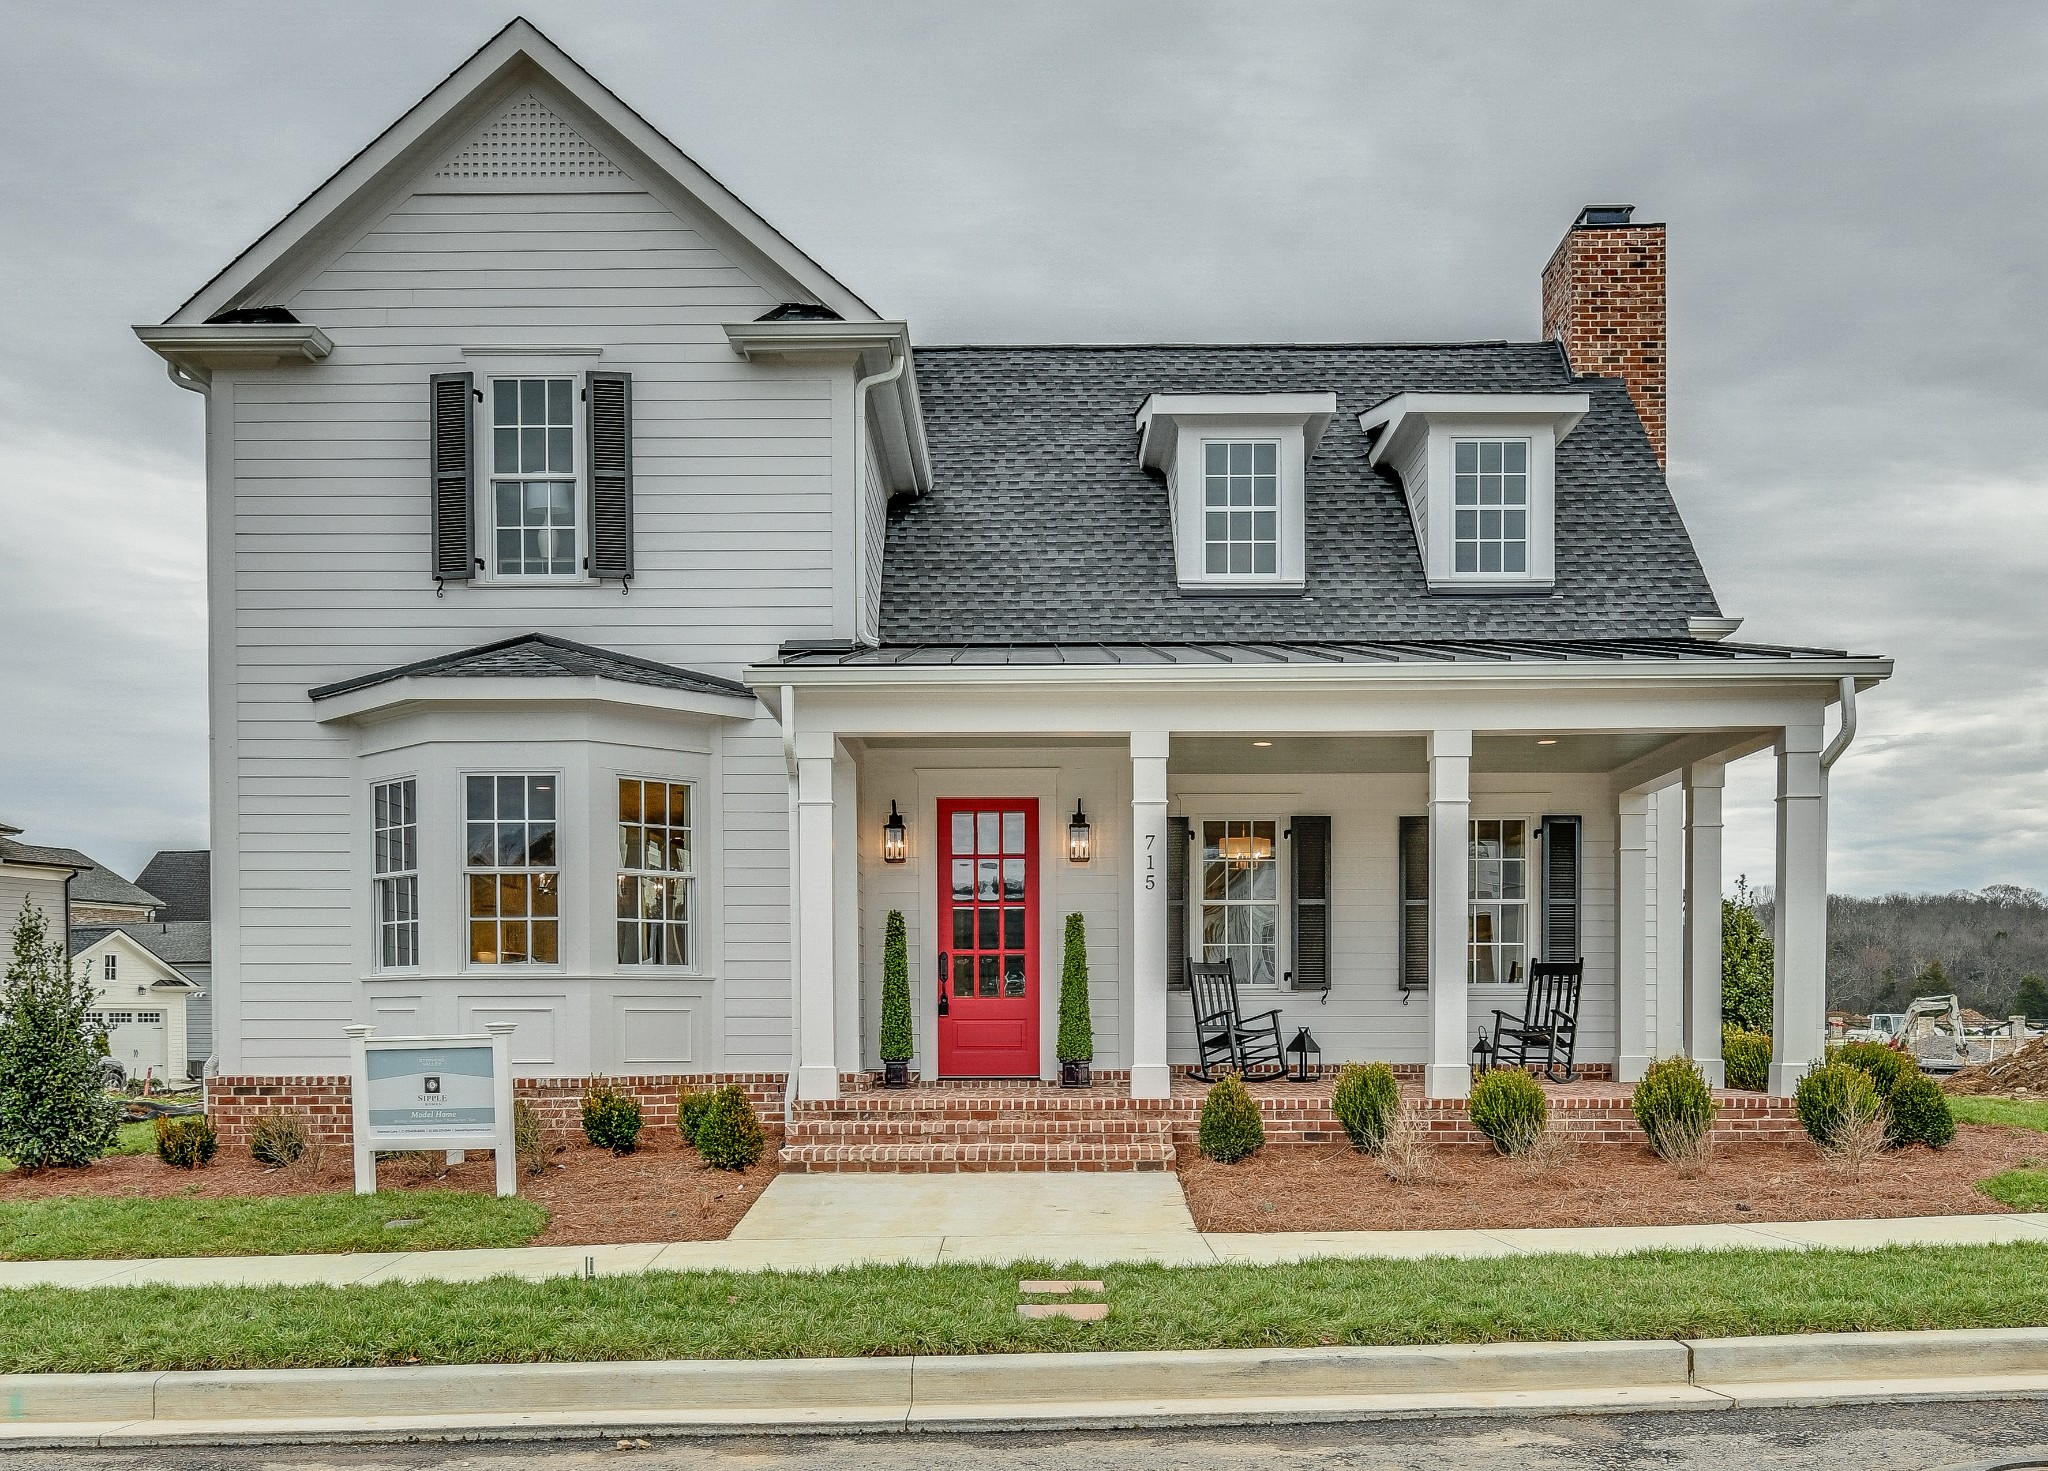 715 Webster Street Lot 326, Bellevue in Williamson County, T County, TN 37221 Home for Sale